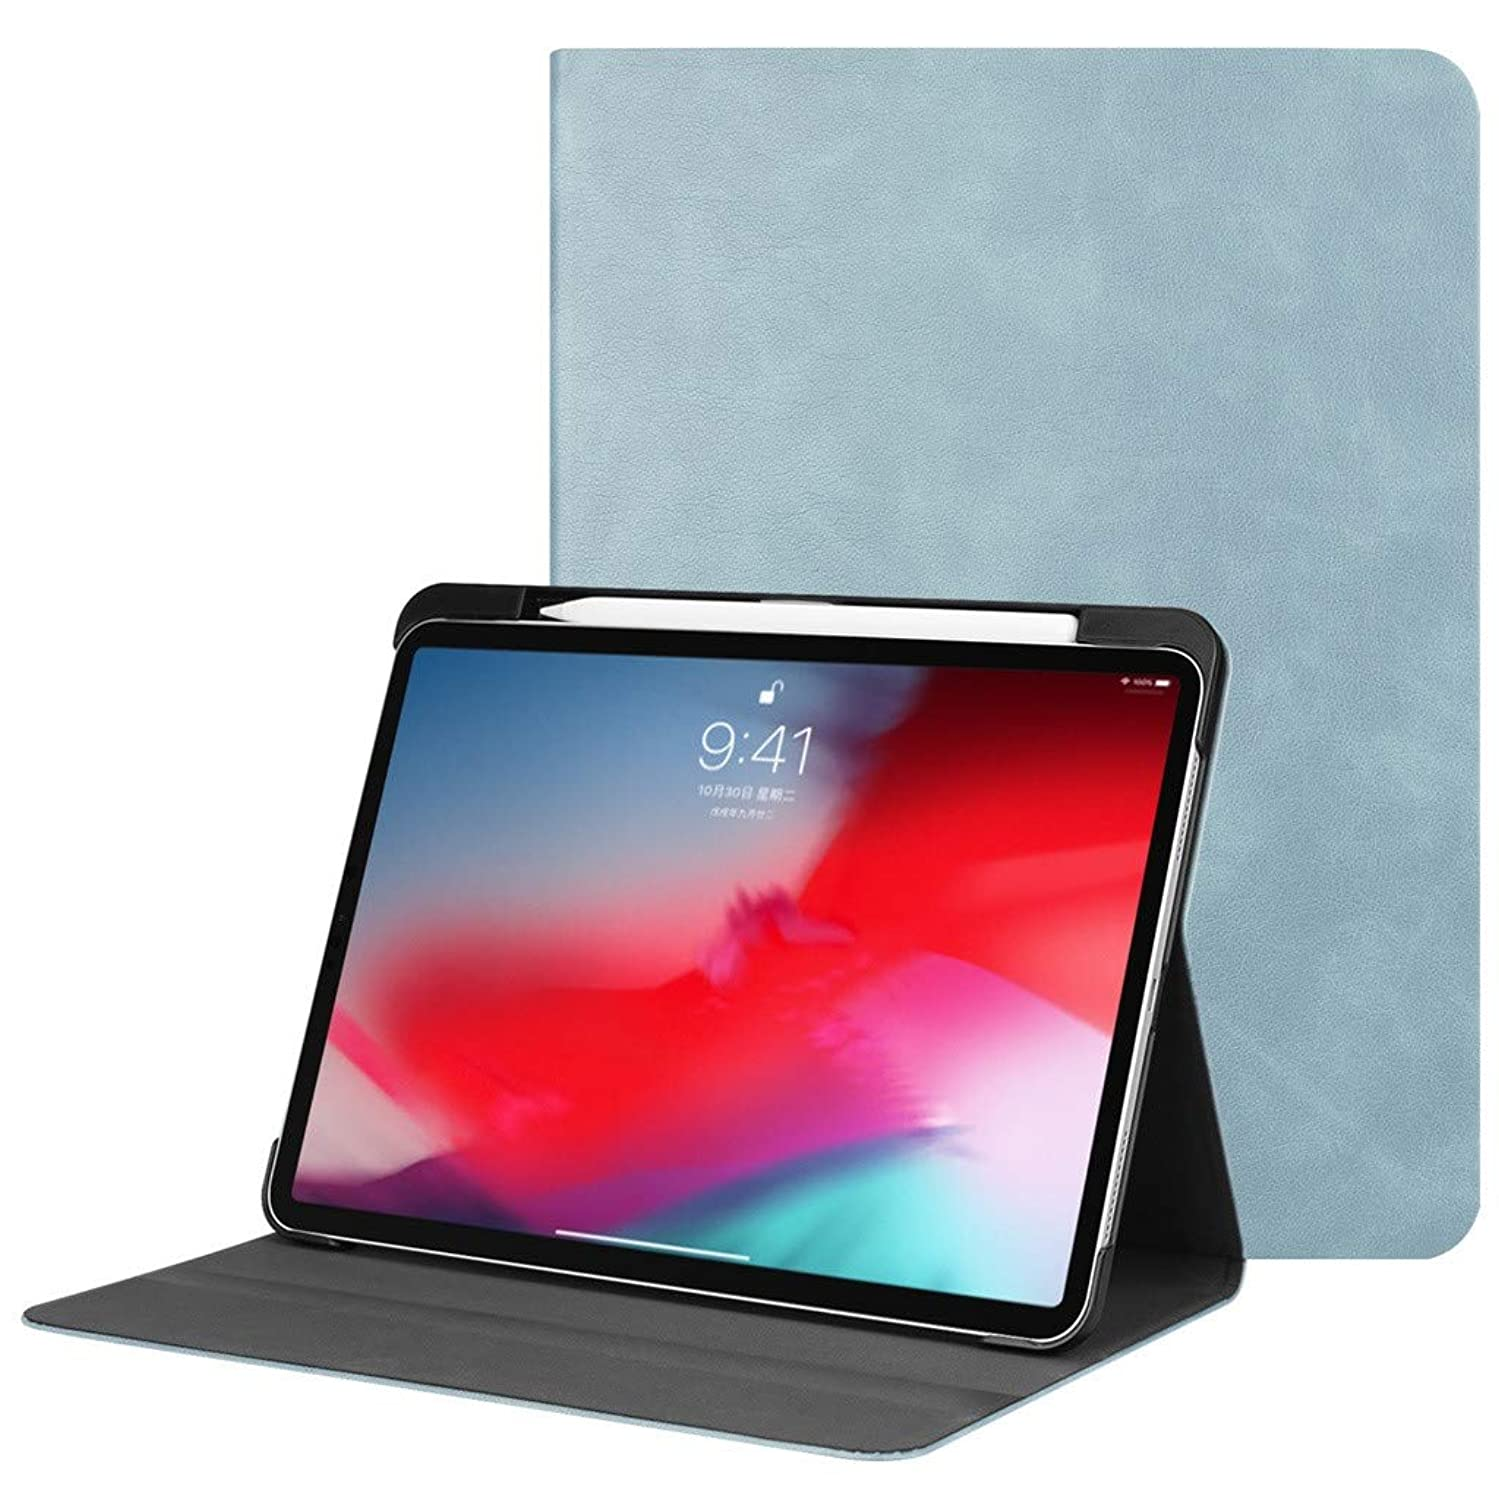 Kybers Slim Lightweight Smart Cover with Auto Sleep/Wake - Stand Cover Pen Holder 2019 for iPad Pro 11-Inch Case